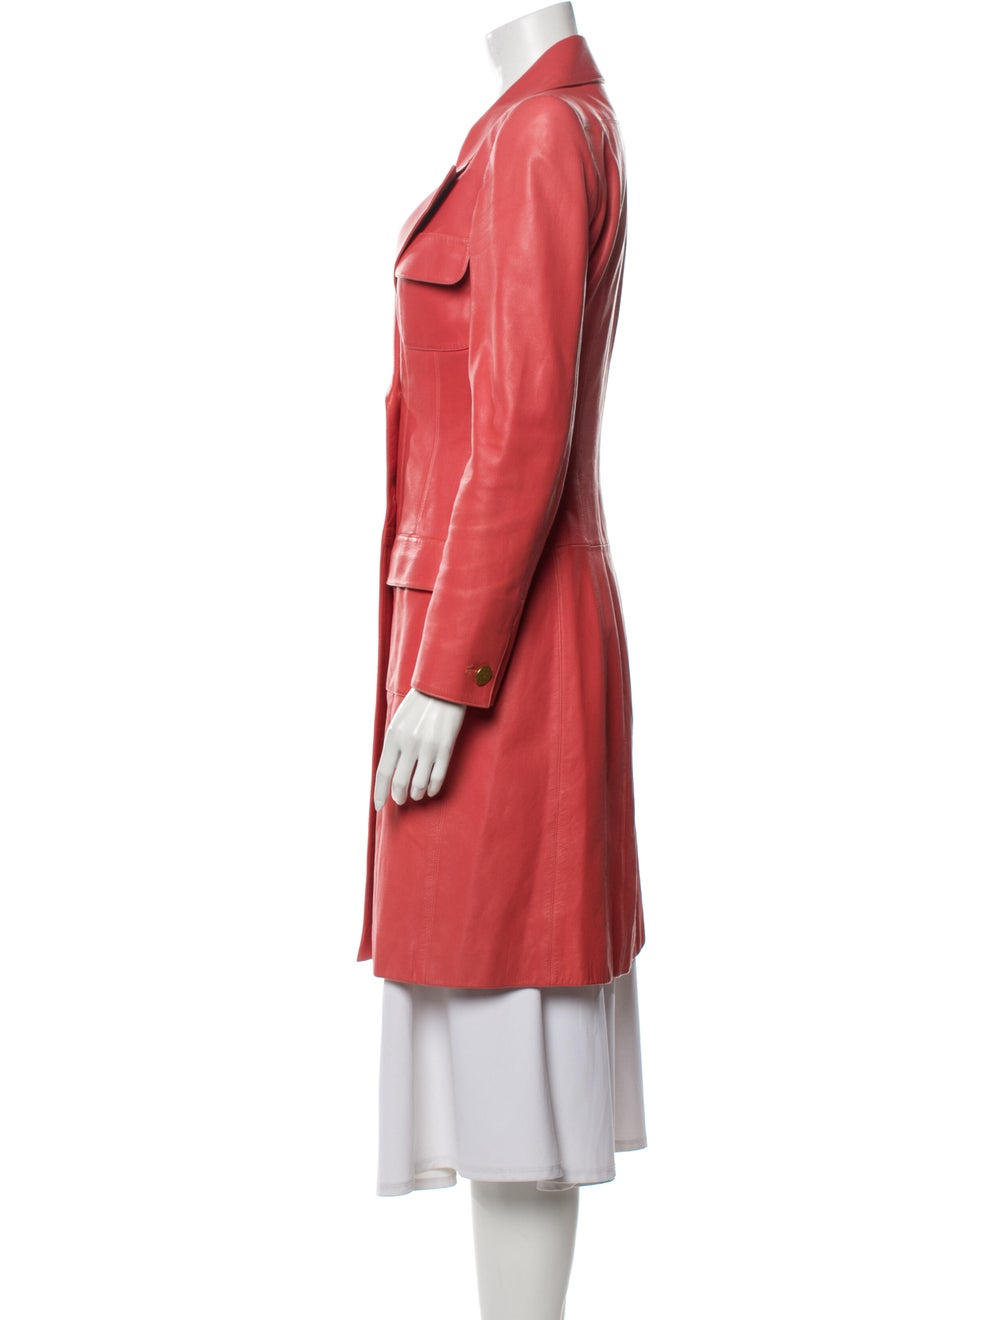 Chanel 2001 Trench Coat Pink - image 2